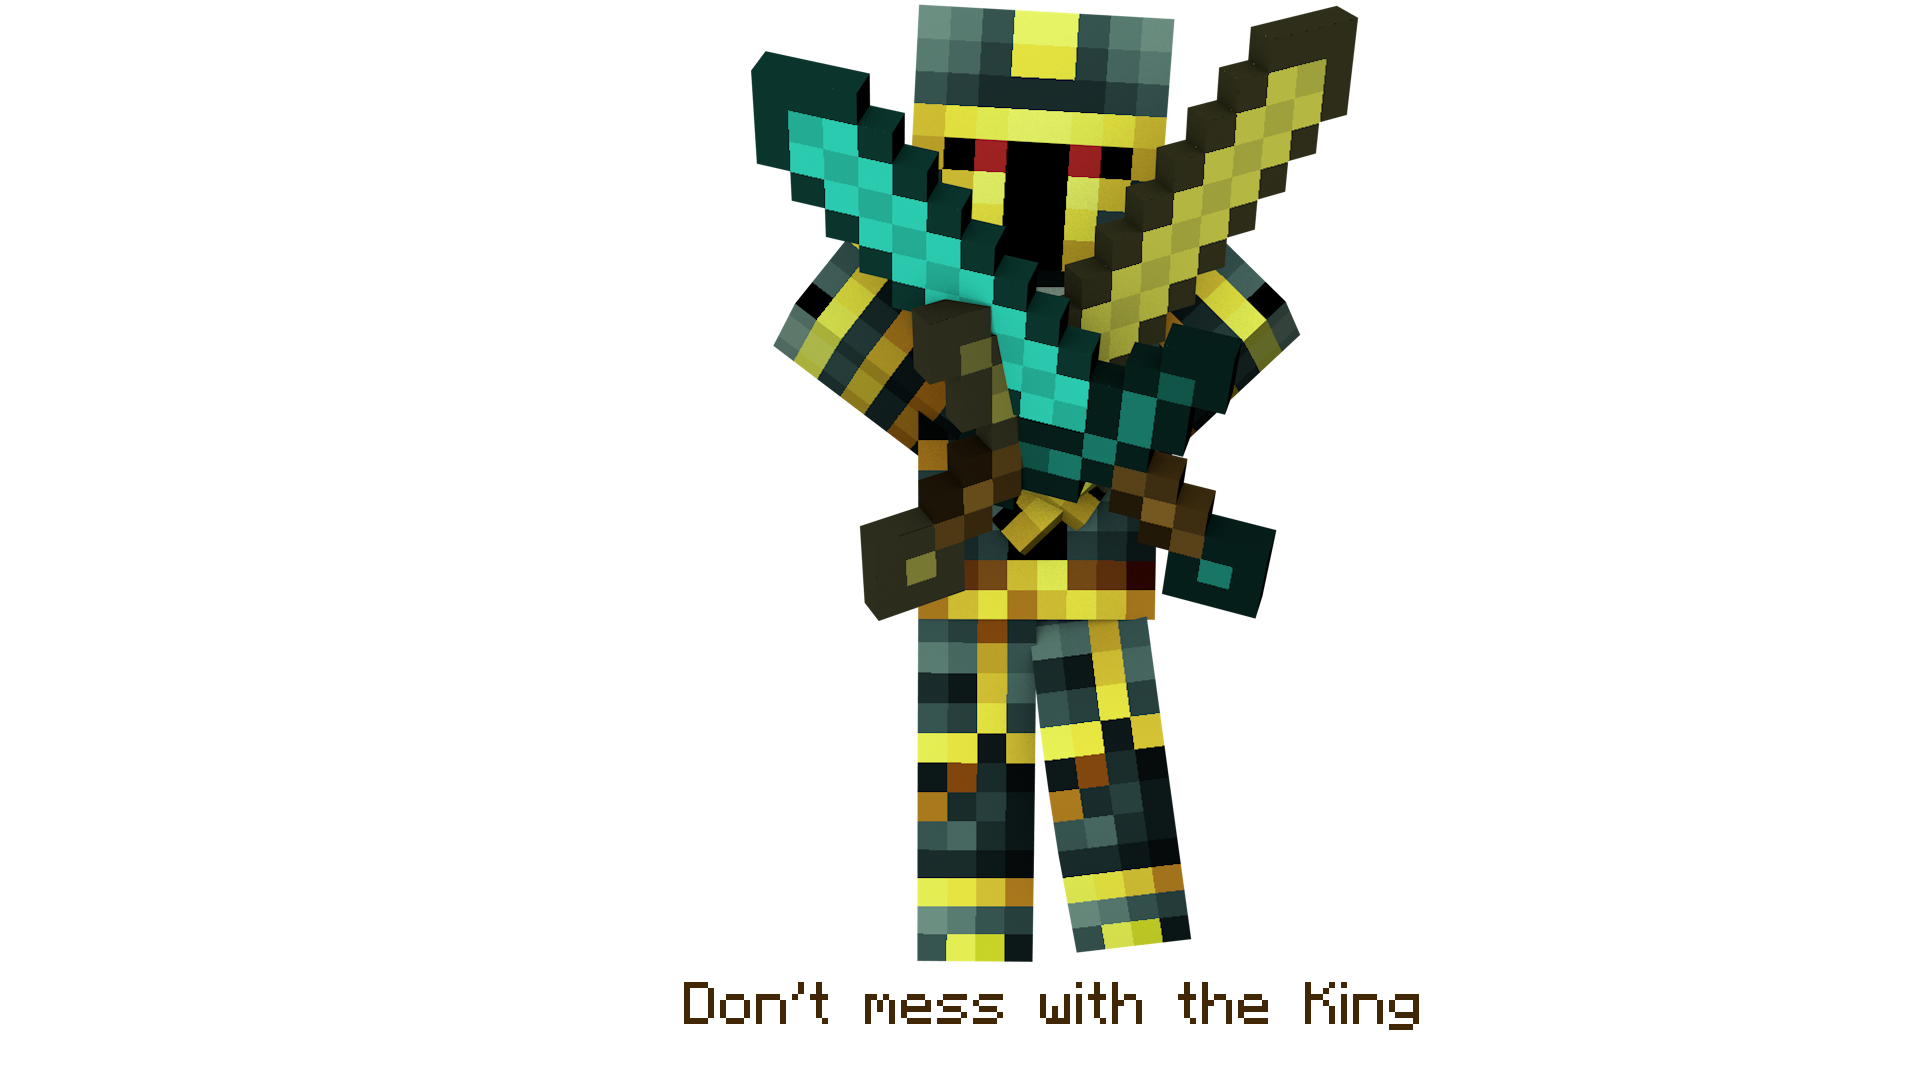 Minecraft diamond swords crossing png. Giving away free d